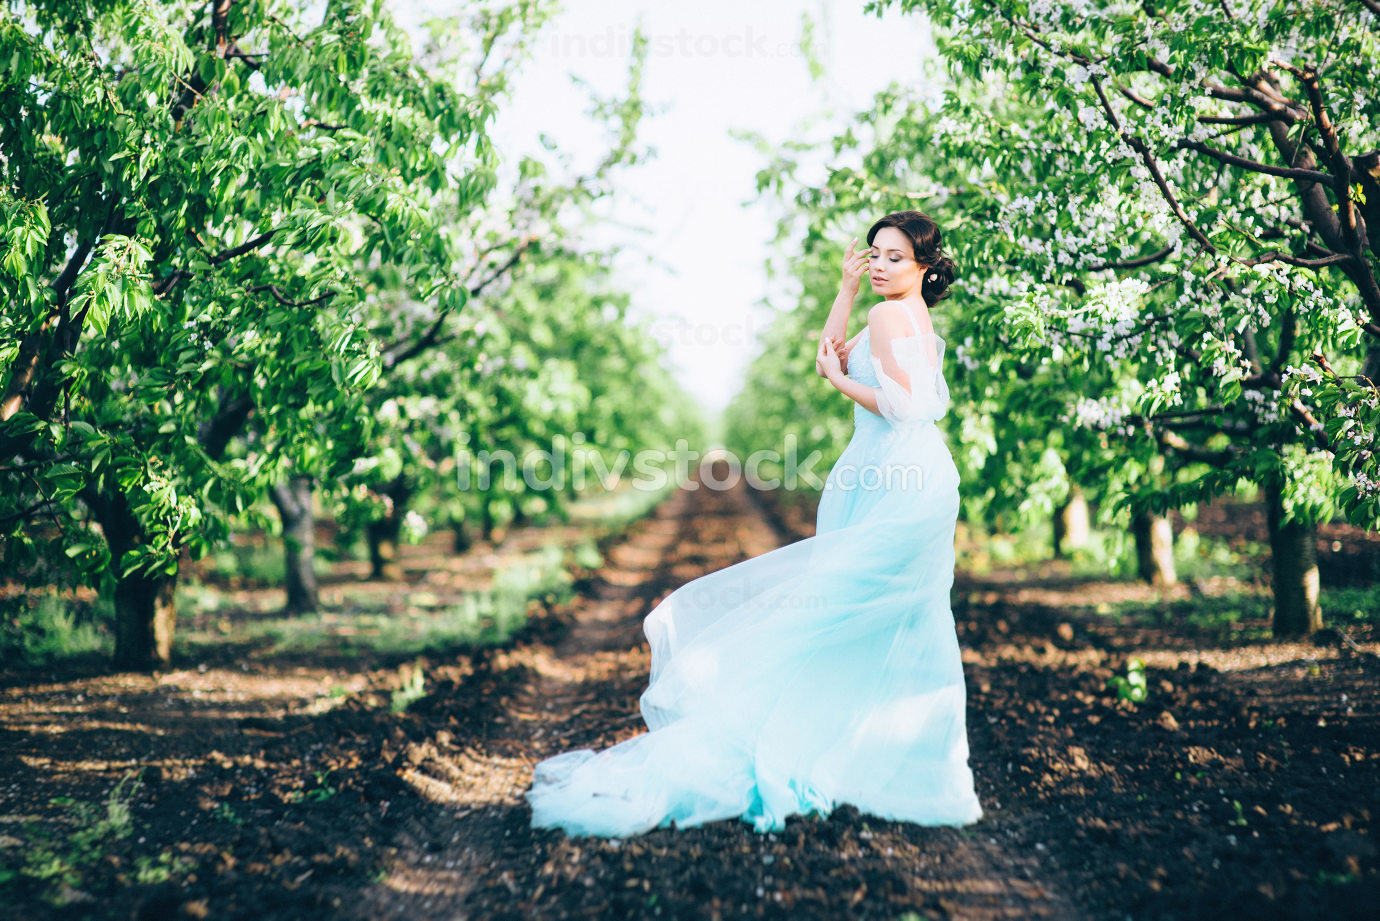 brunette girl in a turquoise dress in the spring garden